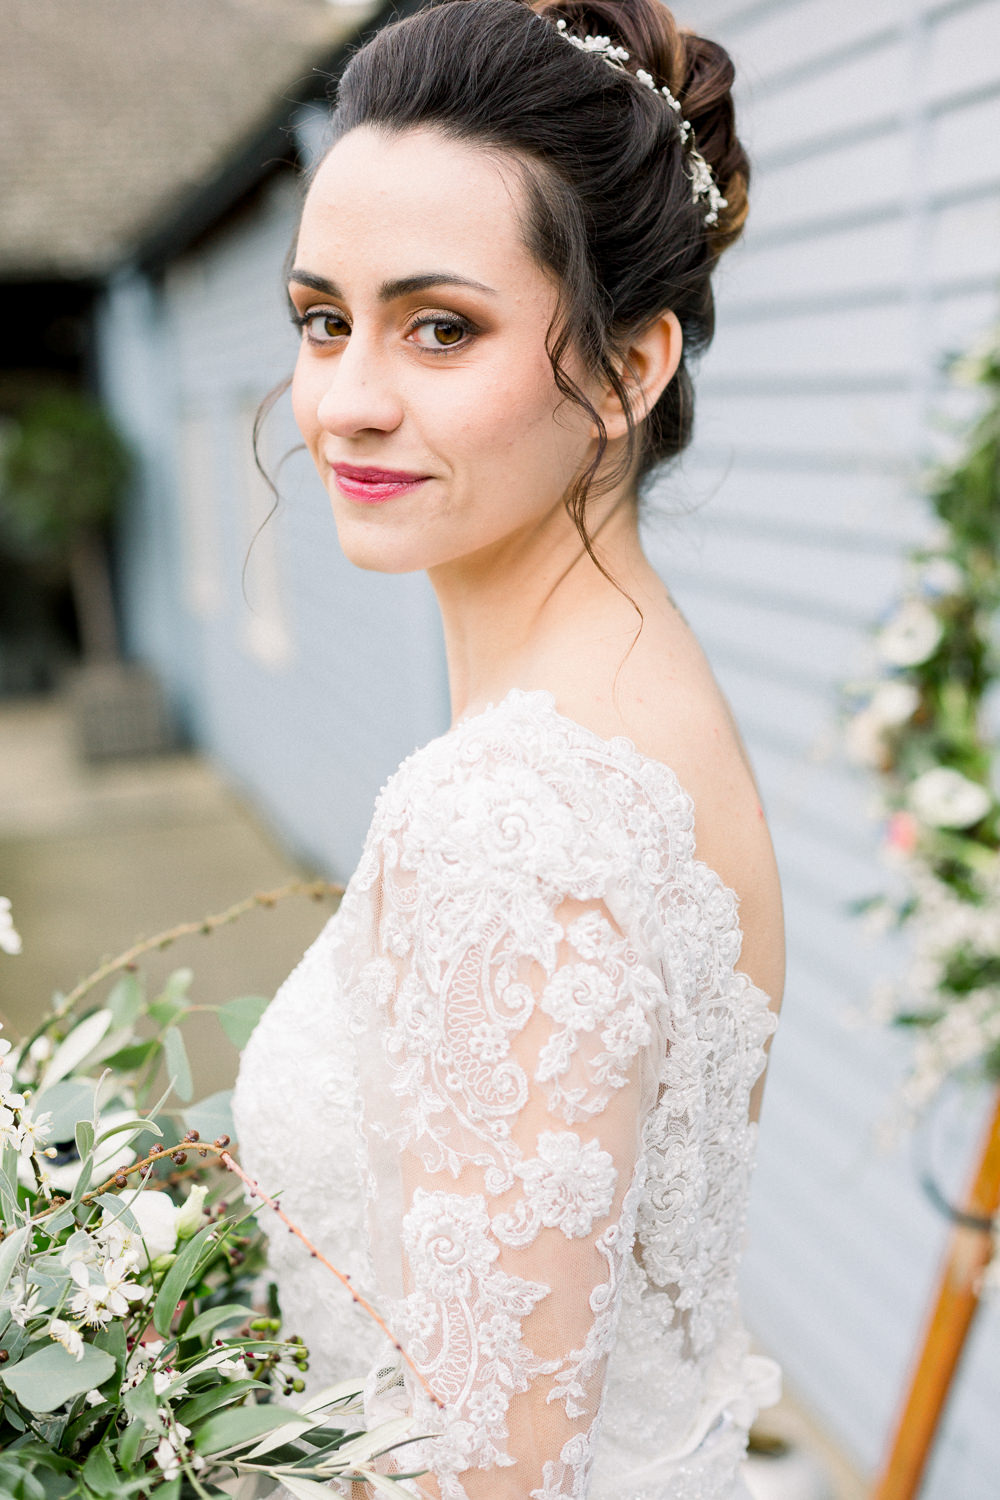 Bride Bridal Make Up Beauty Winter Blue Barn Wedding Ideas Joanna Briggs Photography